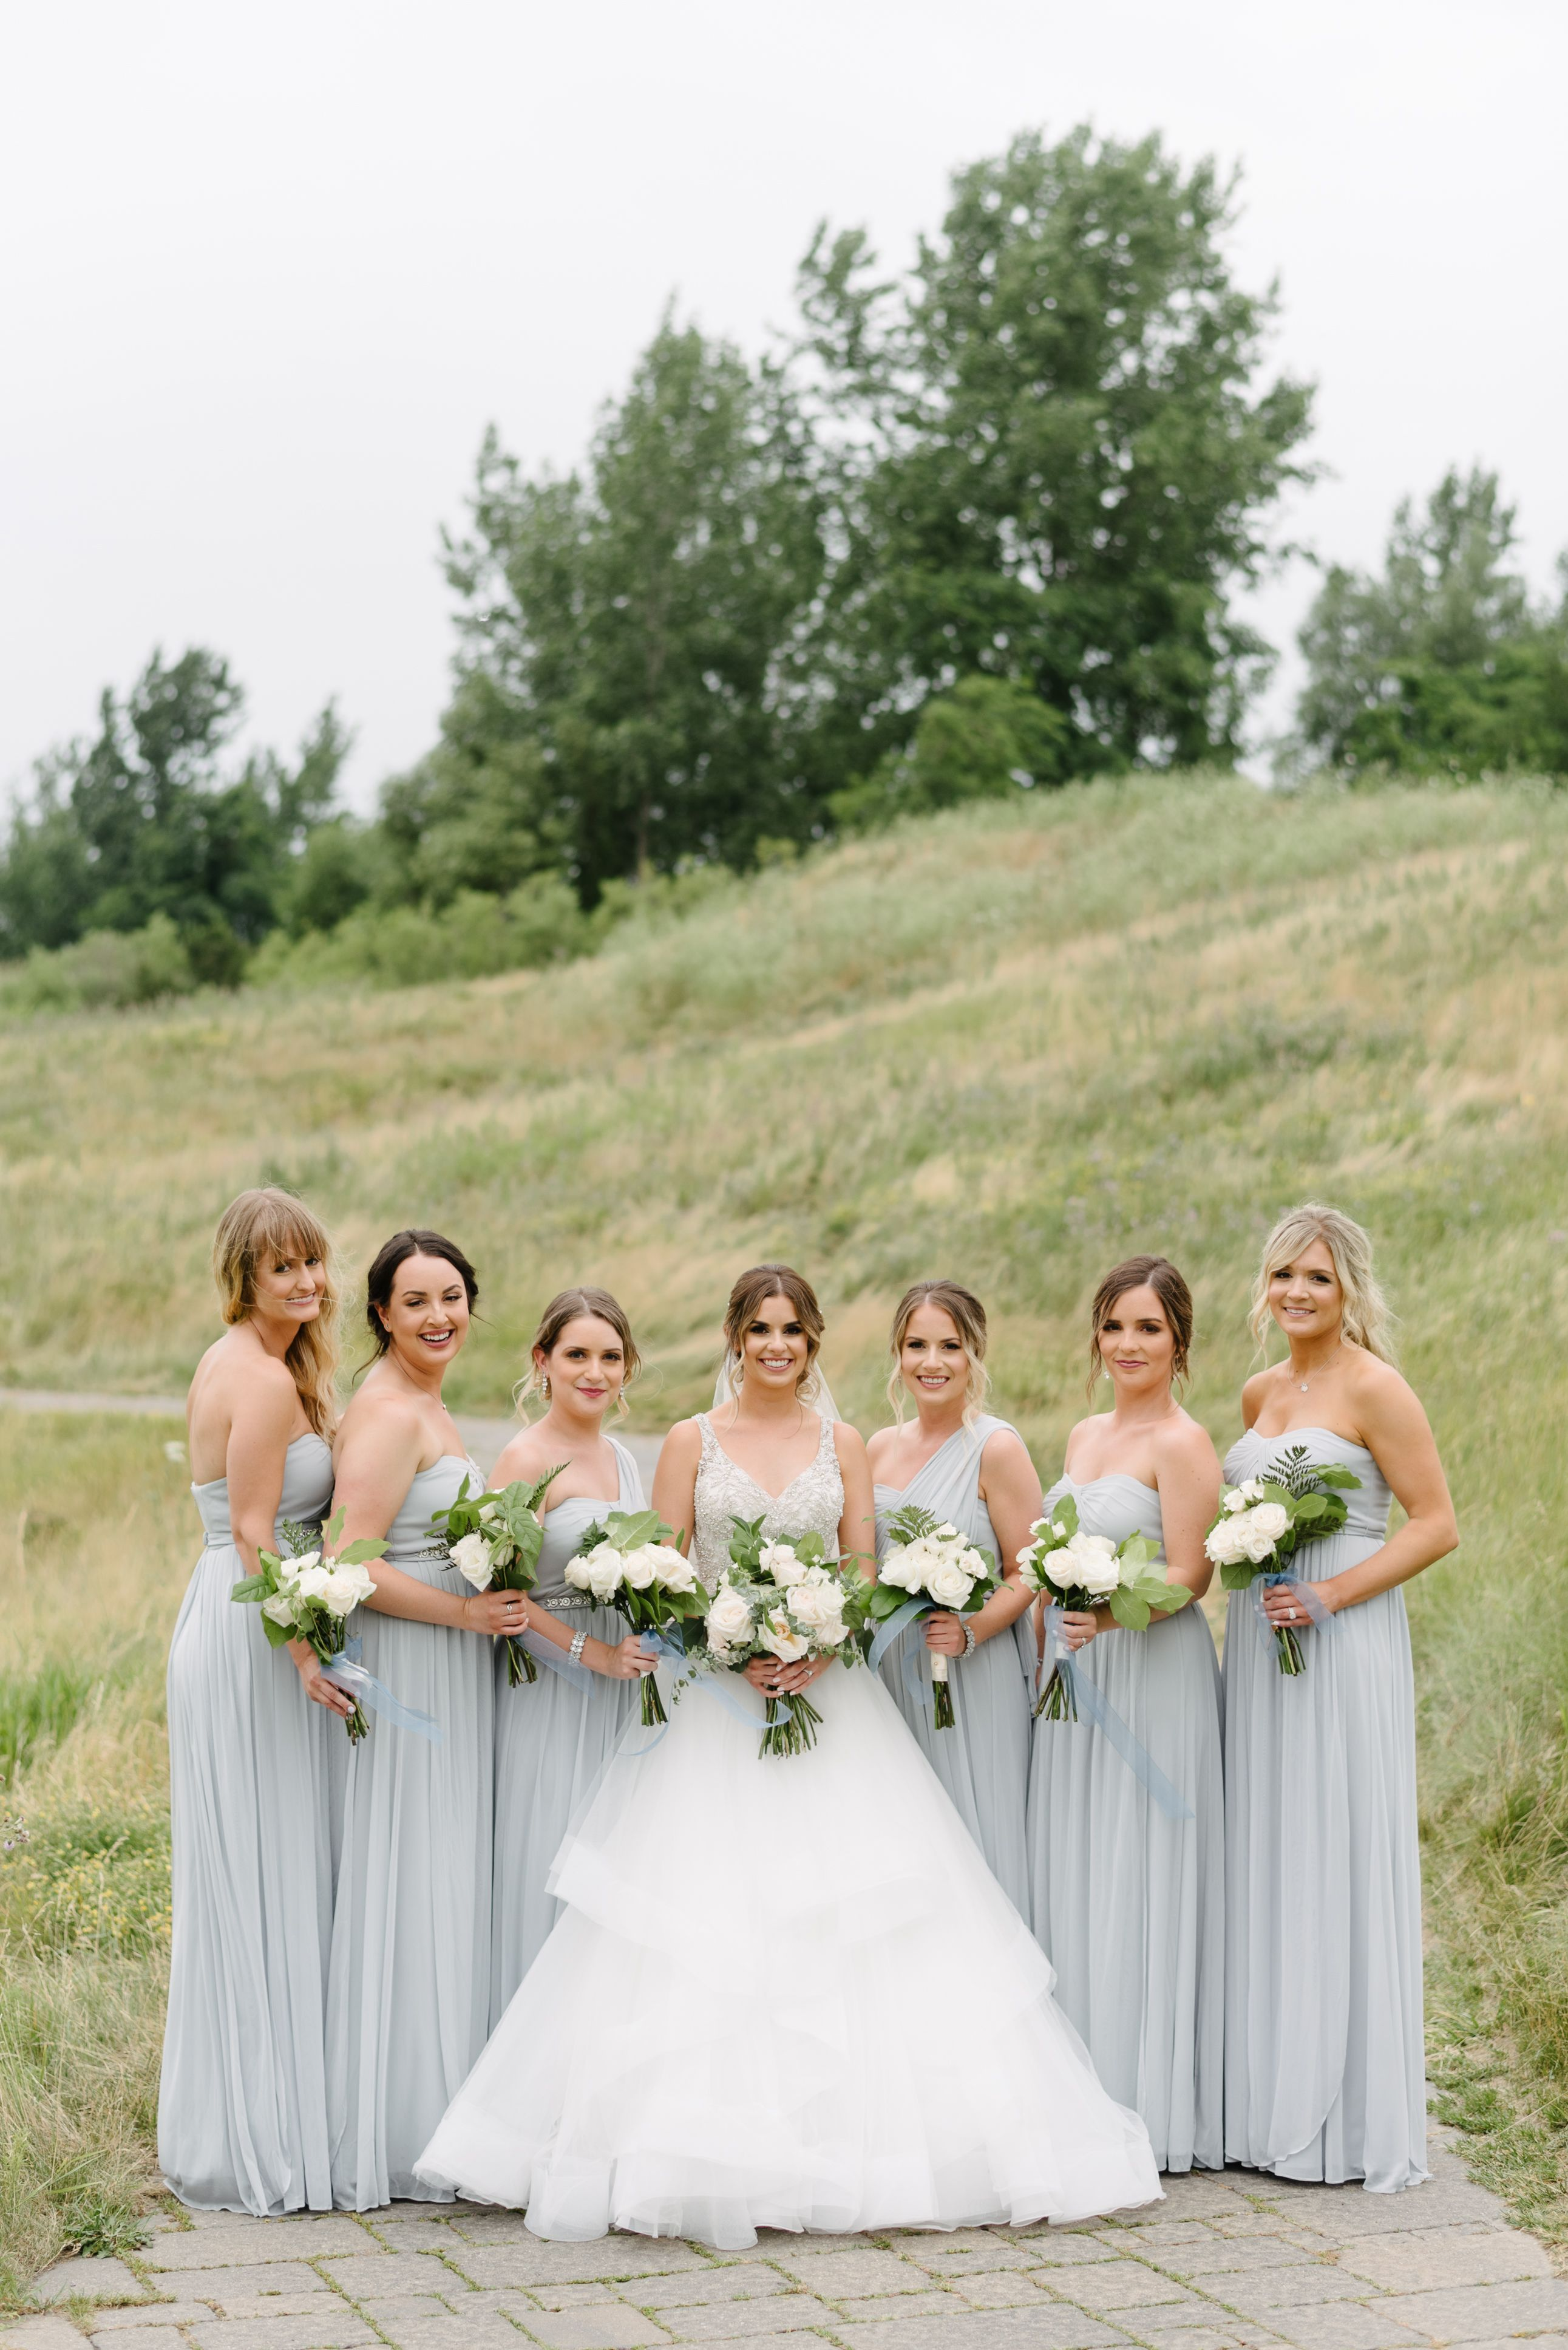 Light Grey French Blue Bridesmaid Dresses With White Florals And Greenery Light Grey Bridesmaid Dresses Grey Blue Bridesmaid Dresses Grey Bridesmaid Dresses [ 3870 x 2583 Pixel ]